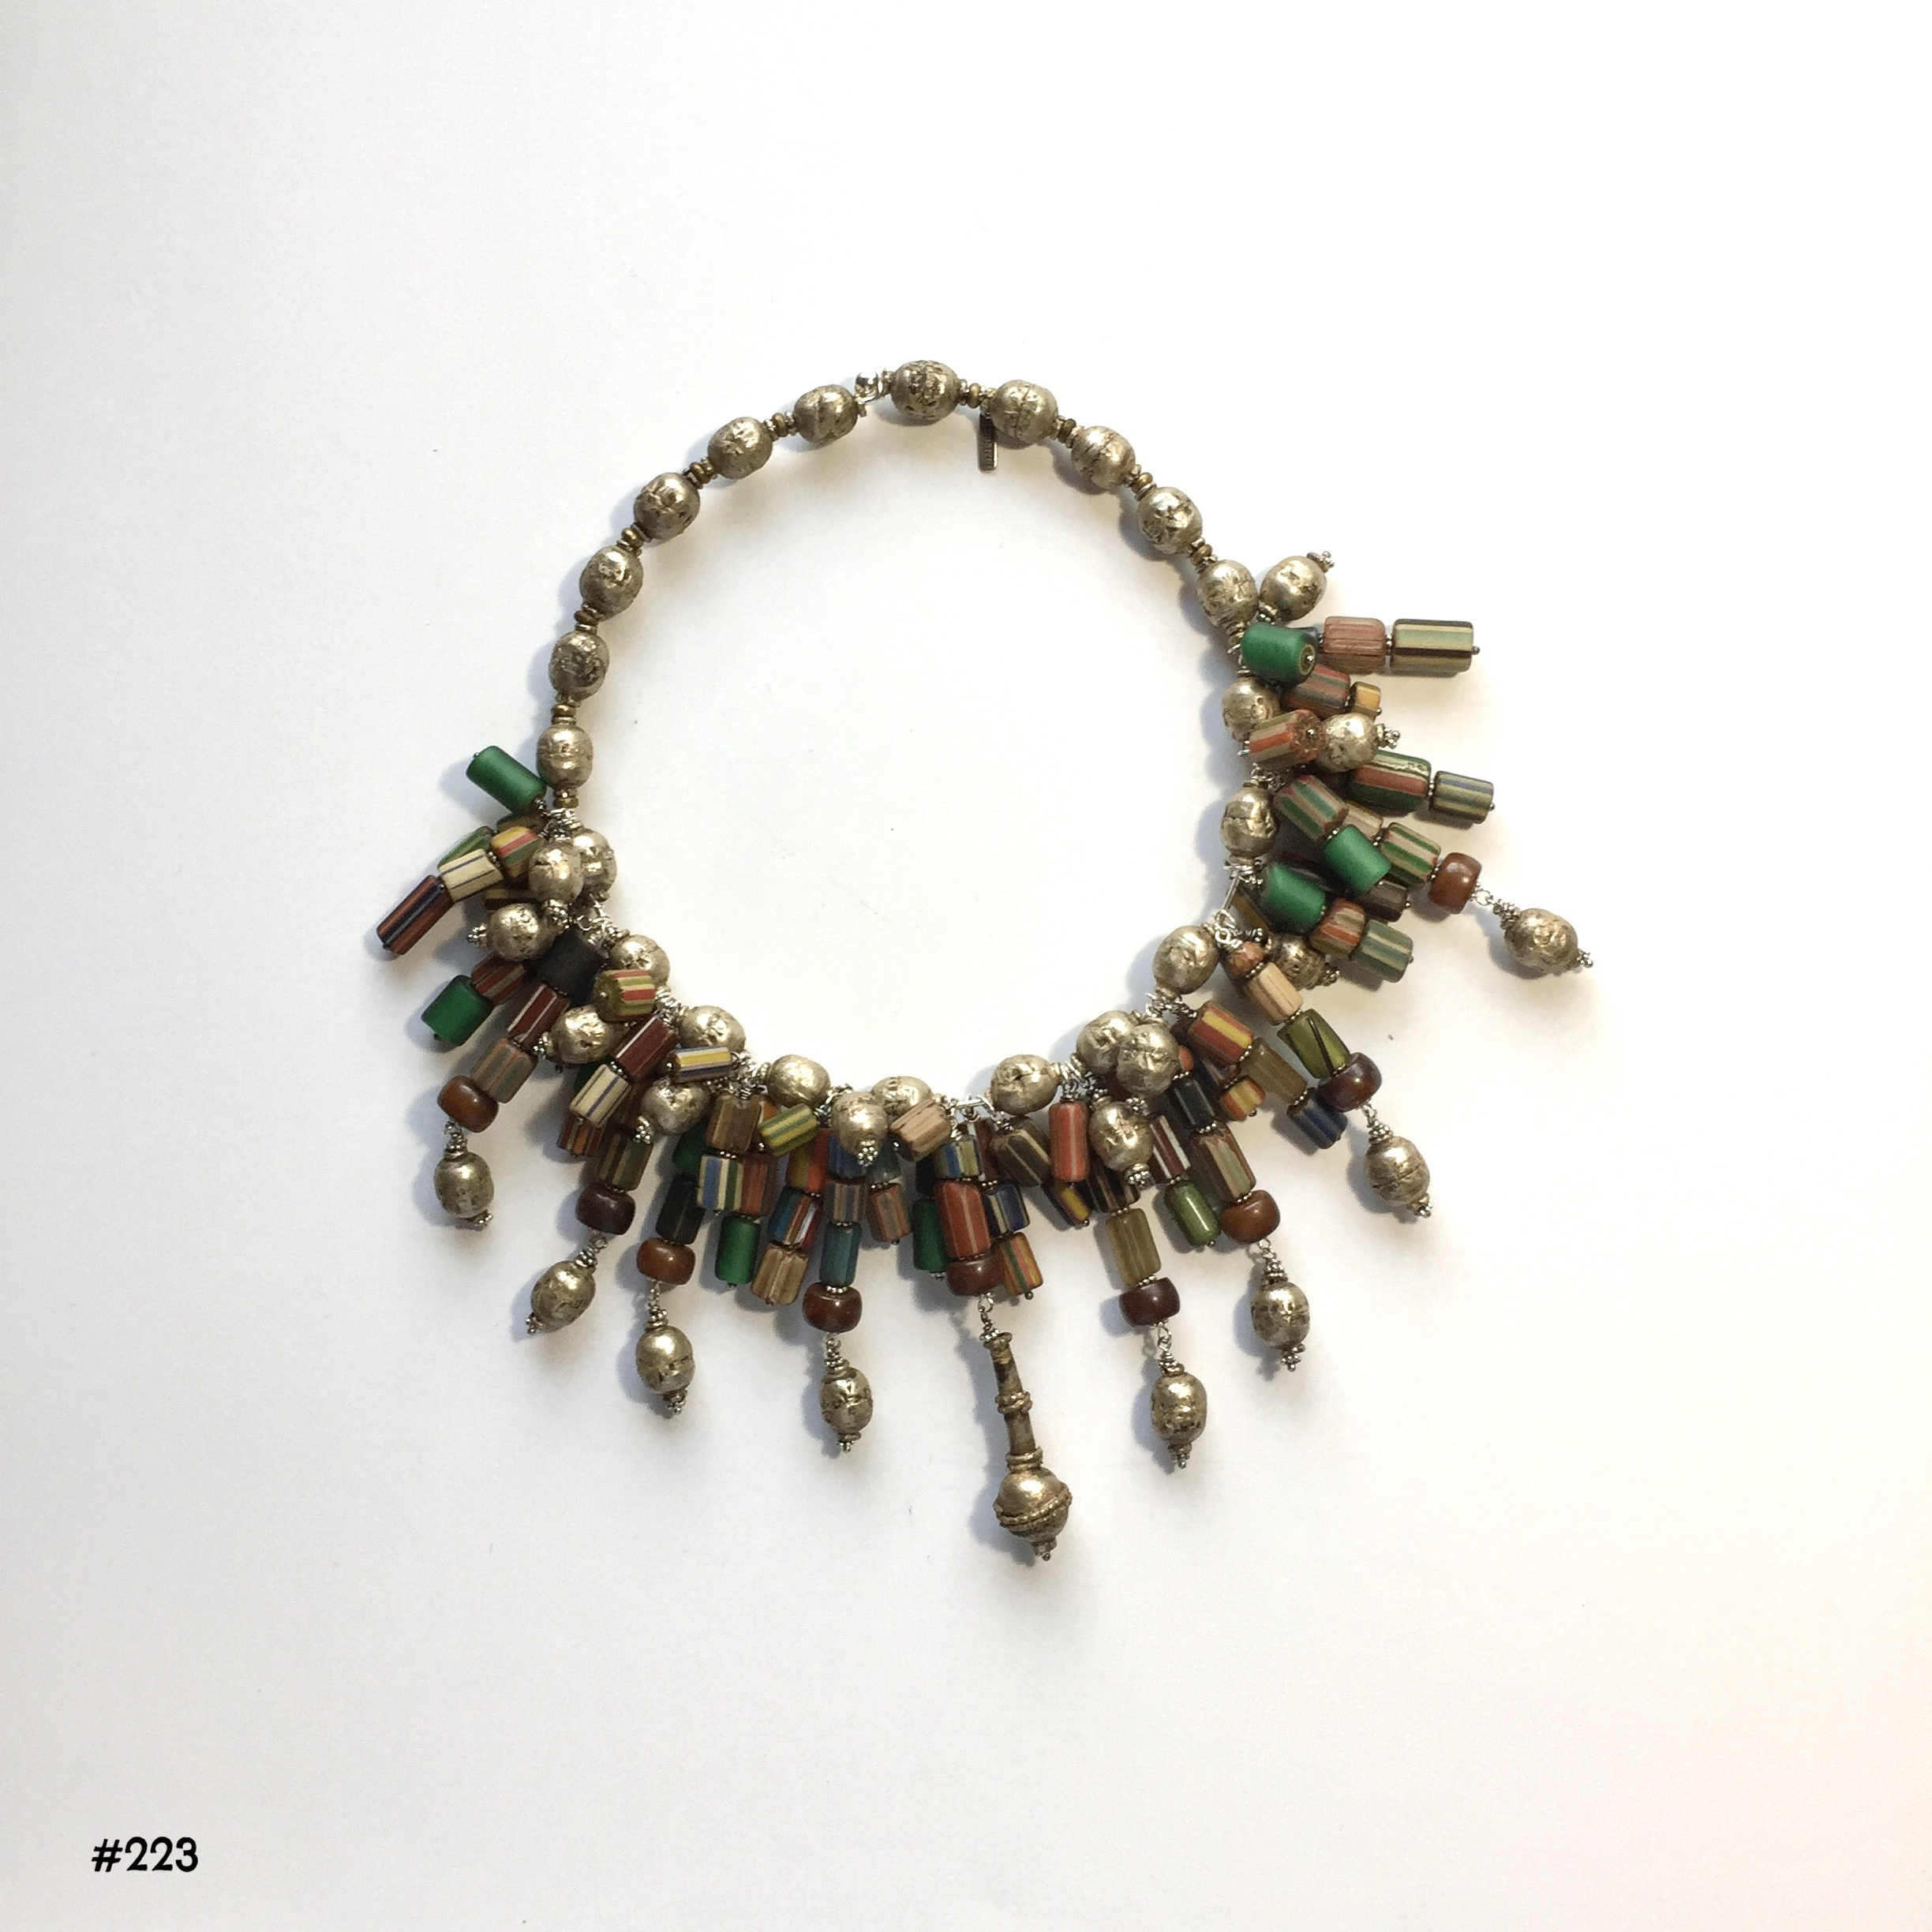 20 Large Handmade Copper Beads,Ethiopian,African Beads